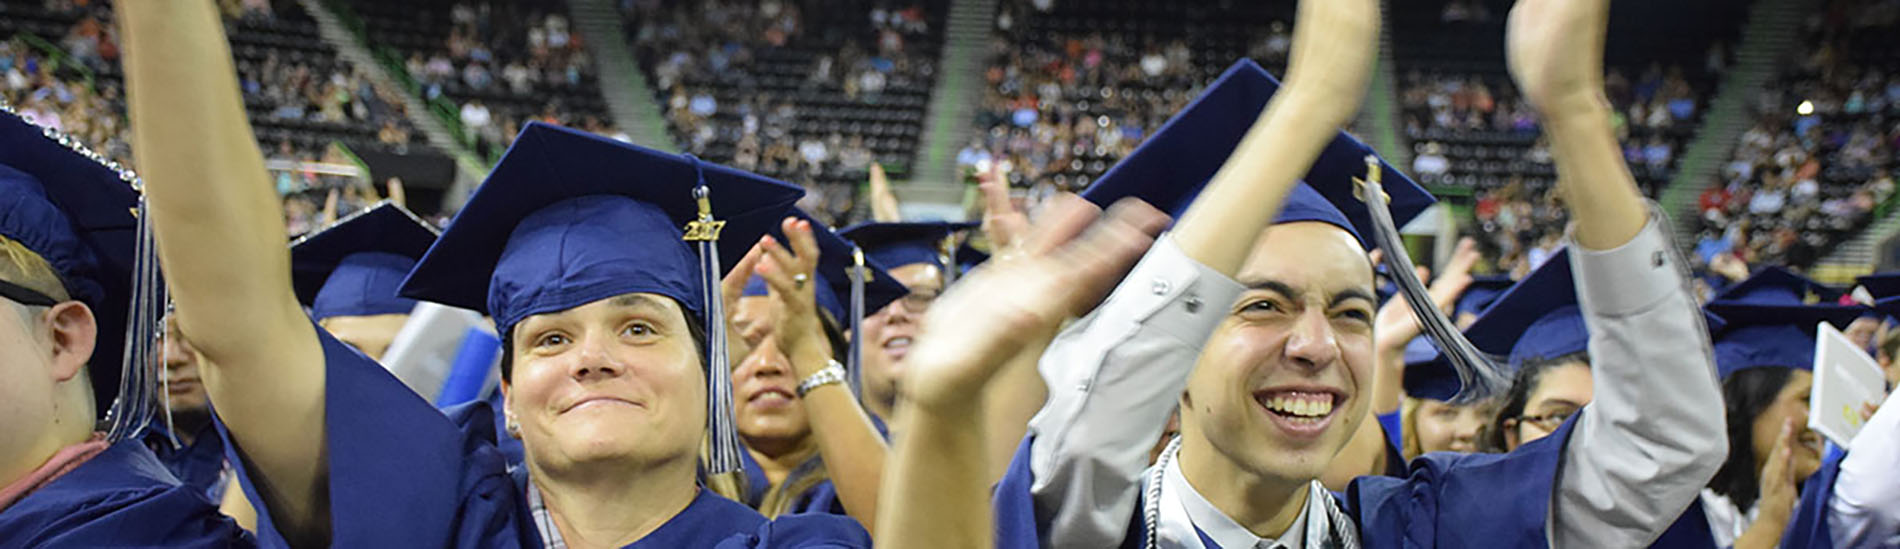 Students celebrate at graduation in their caps and gowns